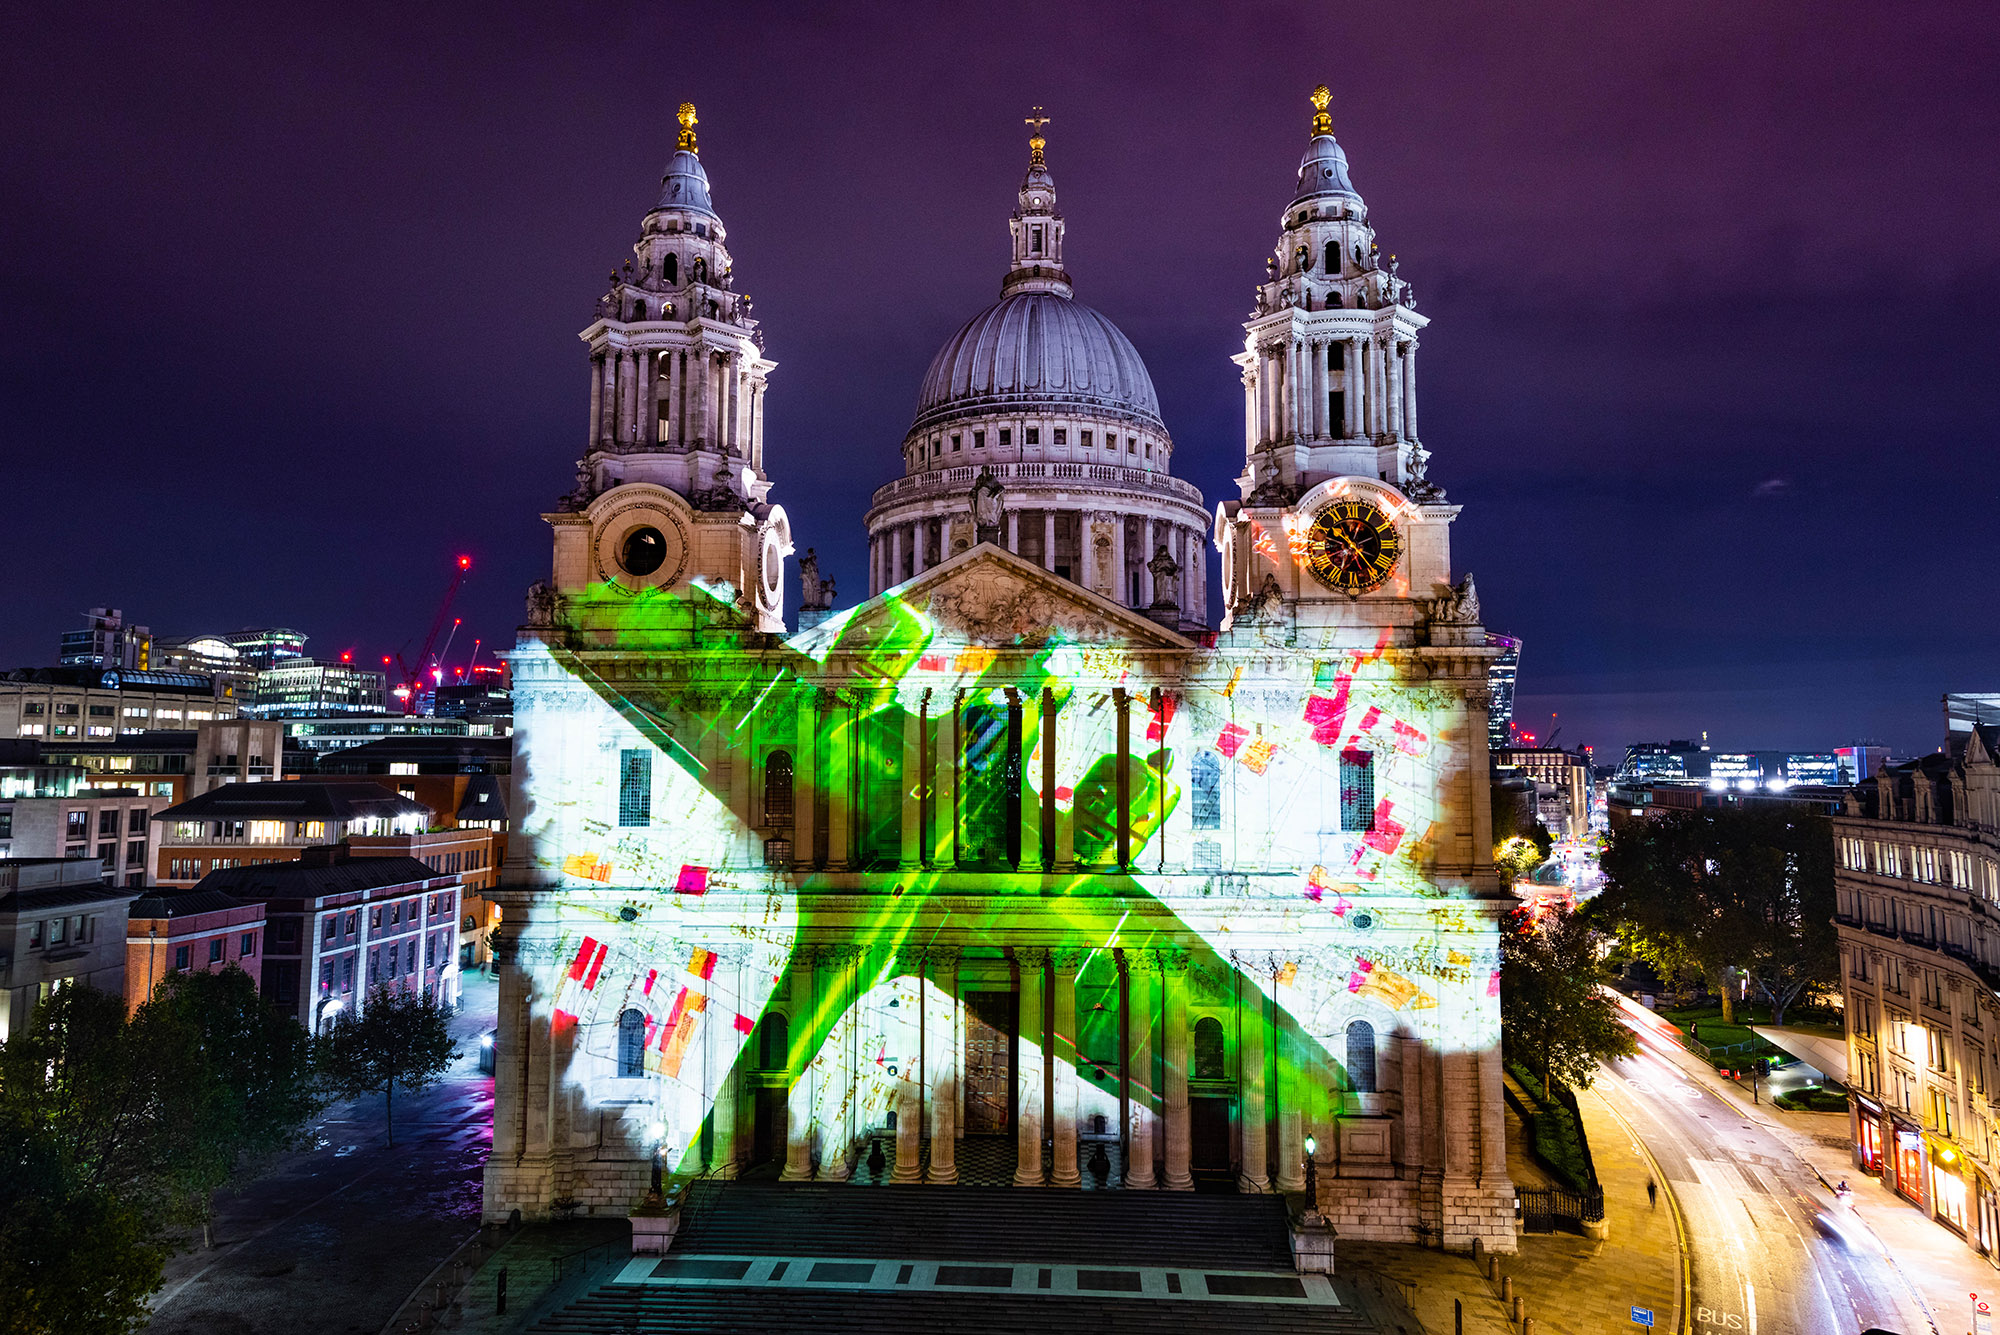 Where Light Falls, Projection mapping show on St Paul's Cathedral